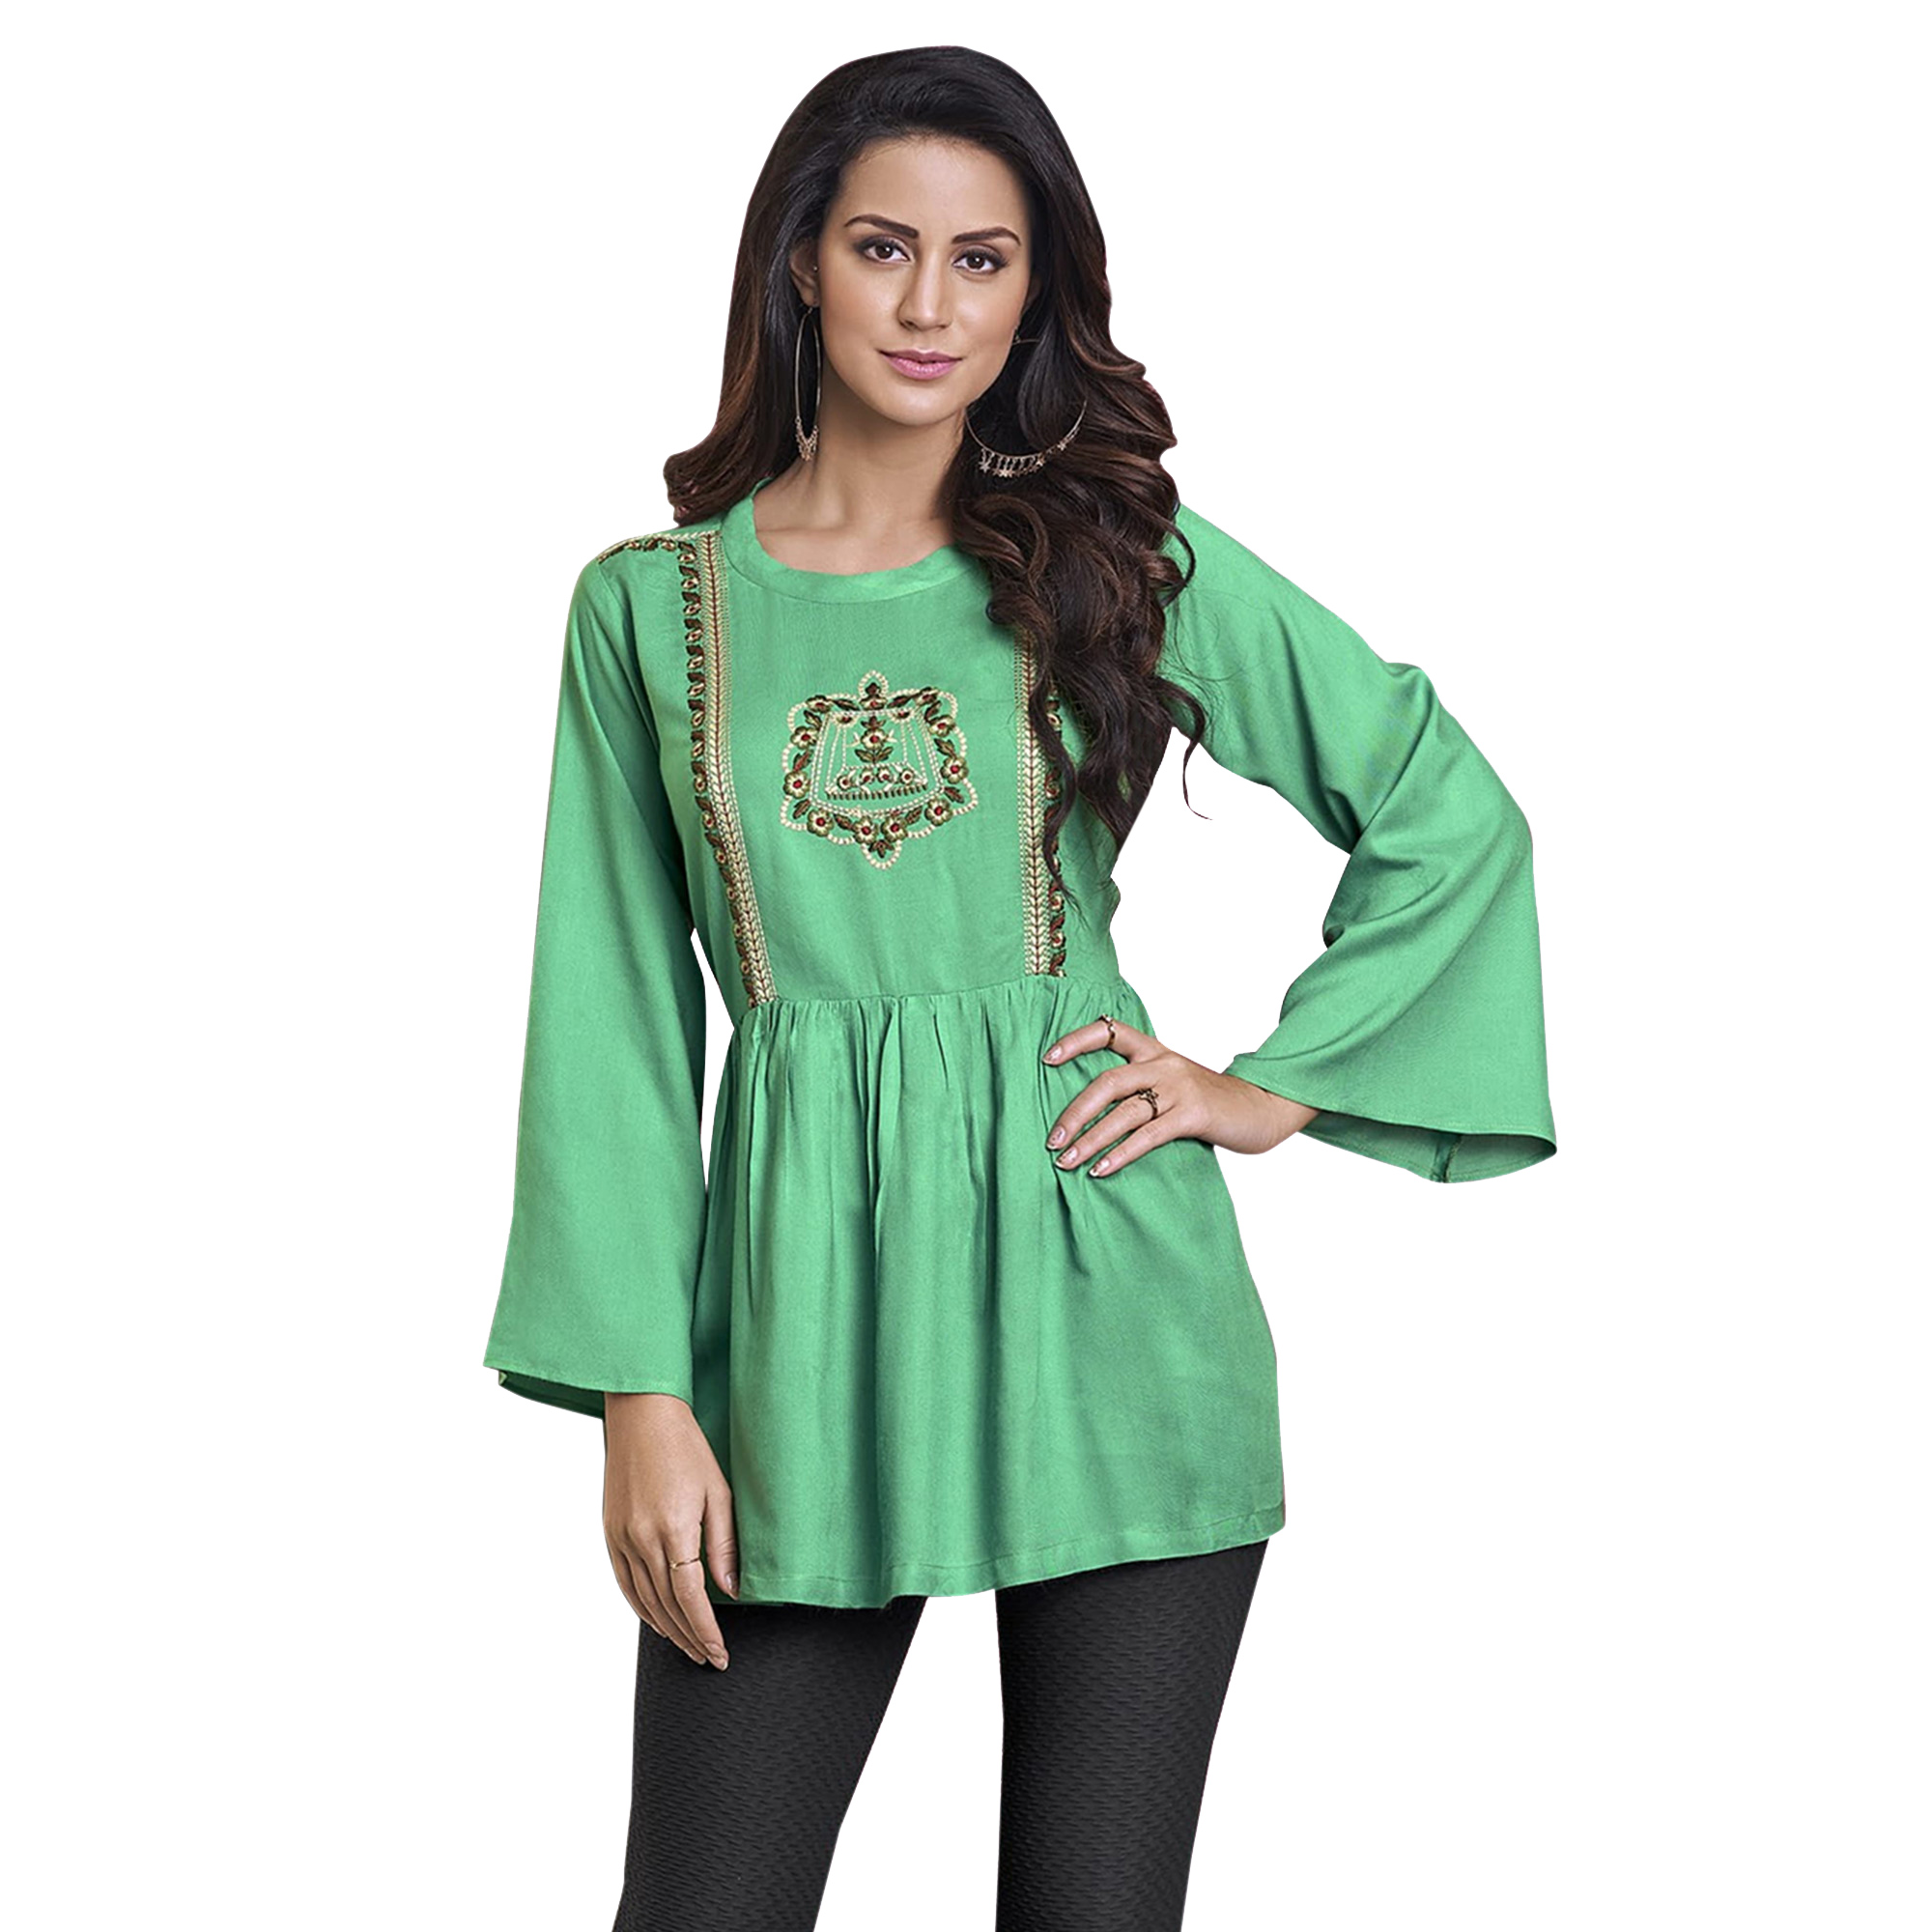 Stunning Partywear Embroidered Rayon Western Top - Pack of 2